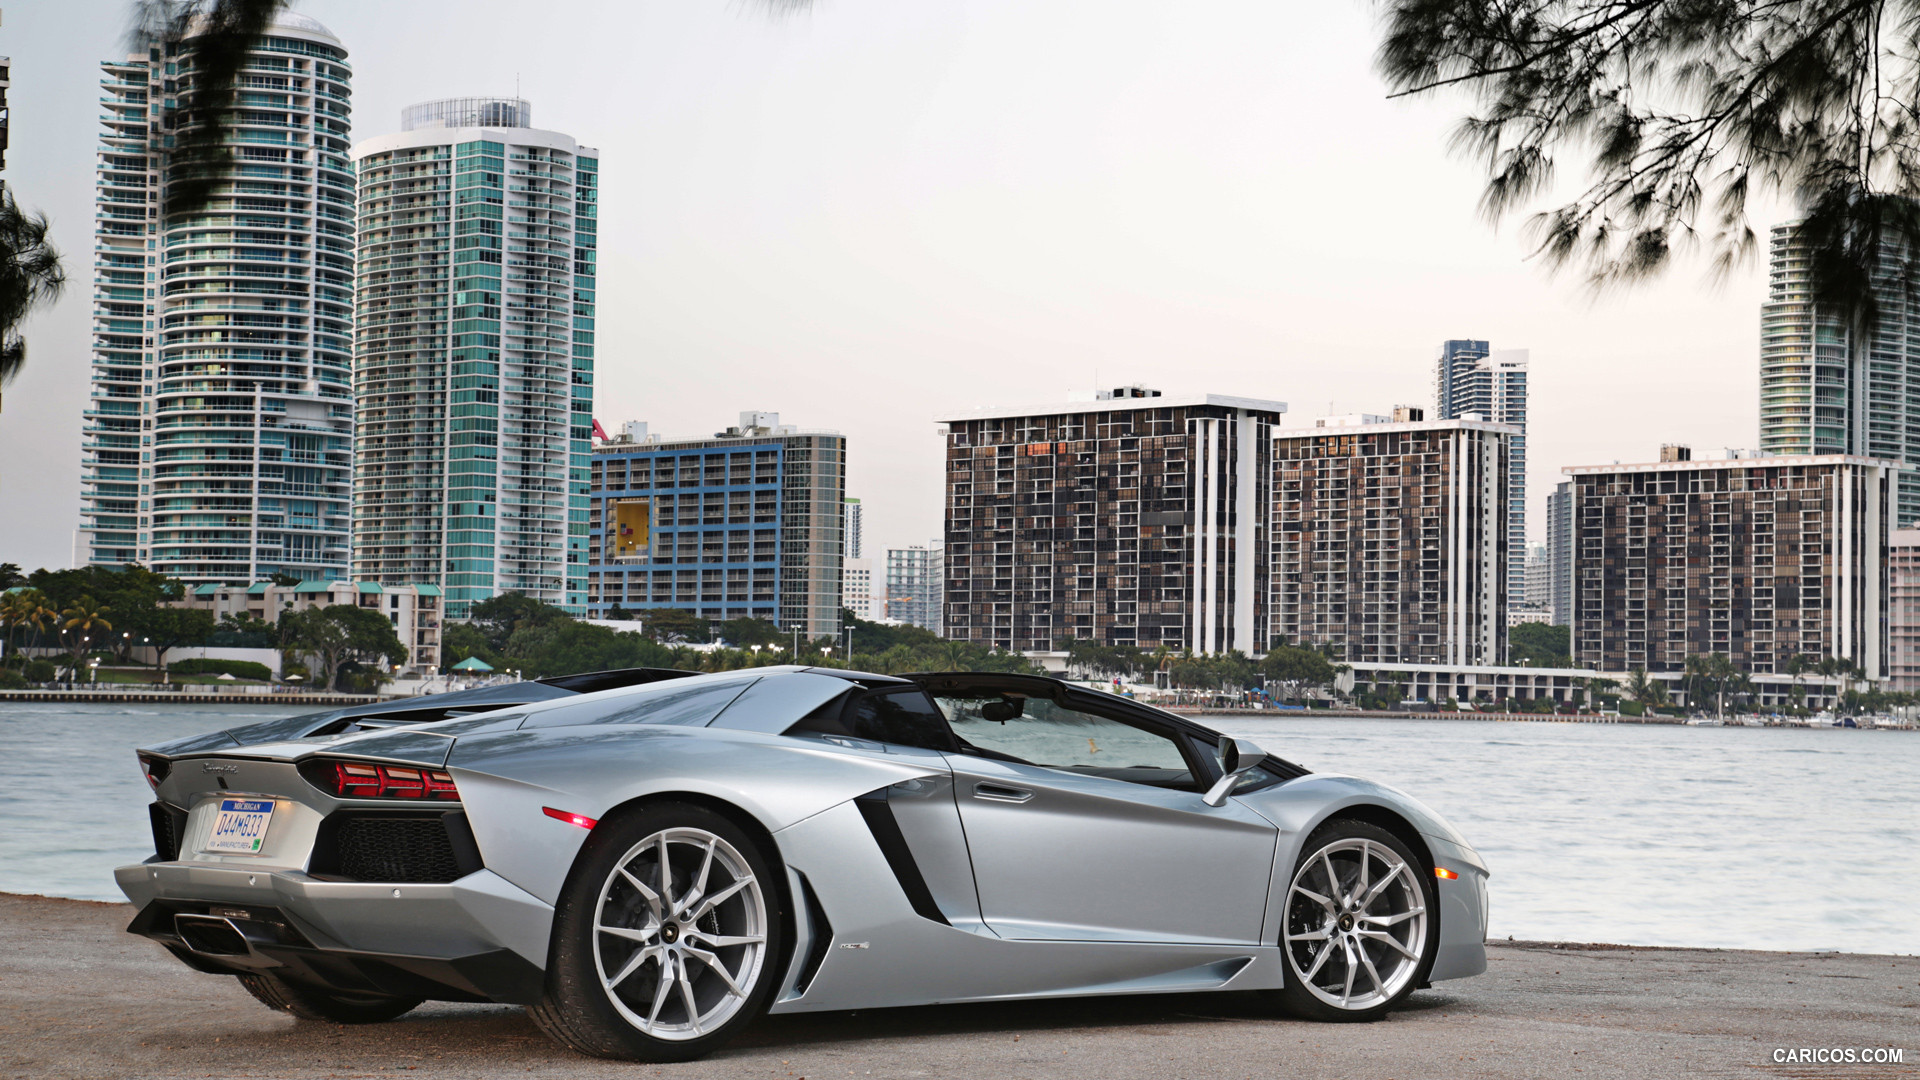 Lamborghini Aventador LP 700-4 Roadster photo 109645